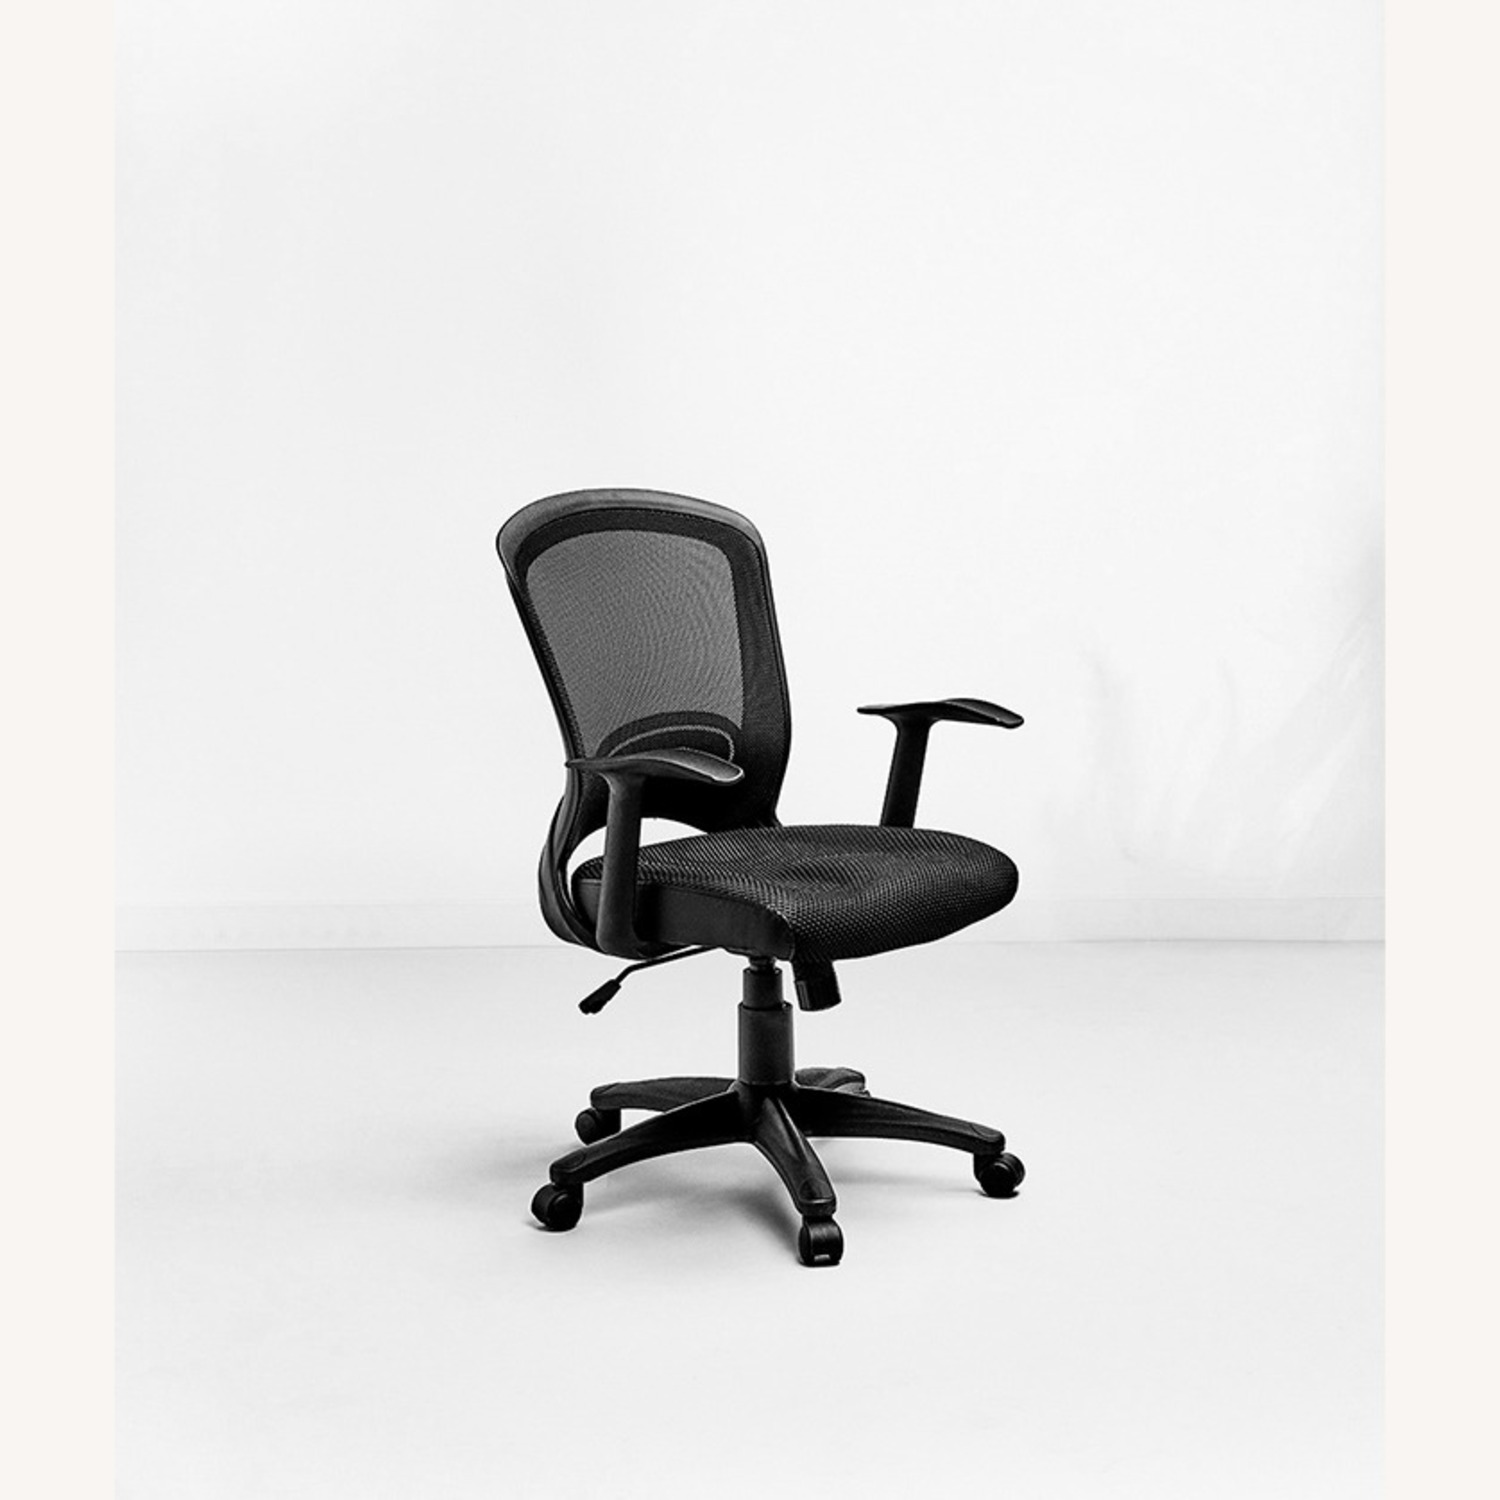 Modway Whistler Desk Chair - image-6